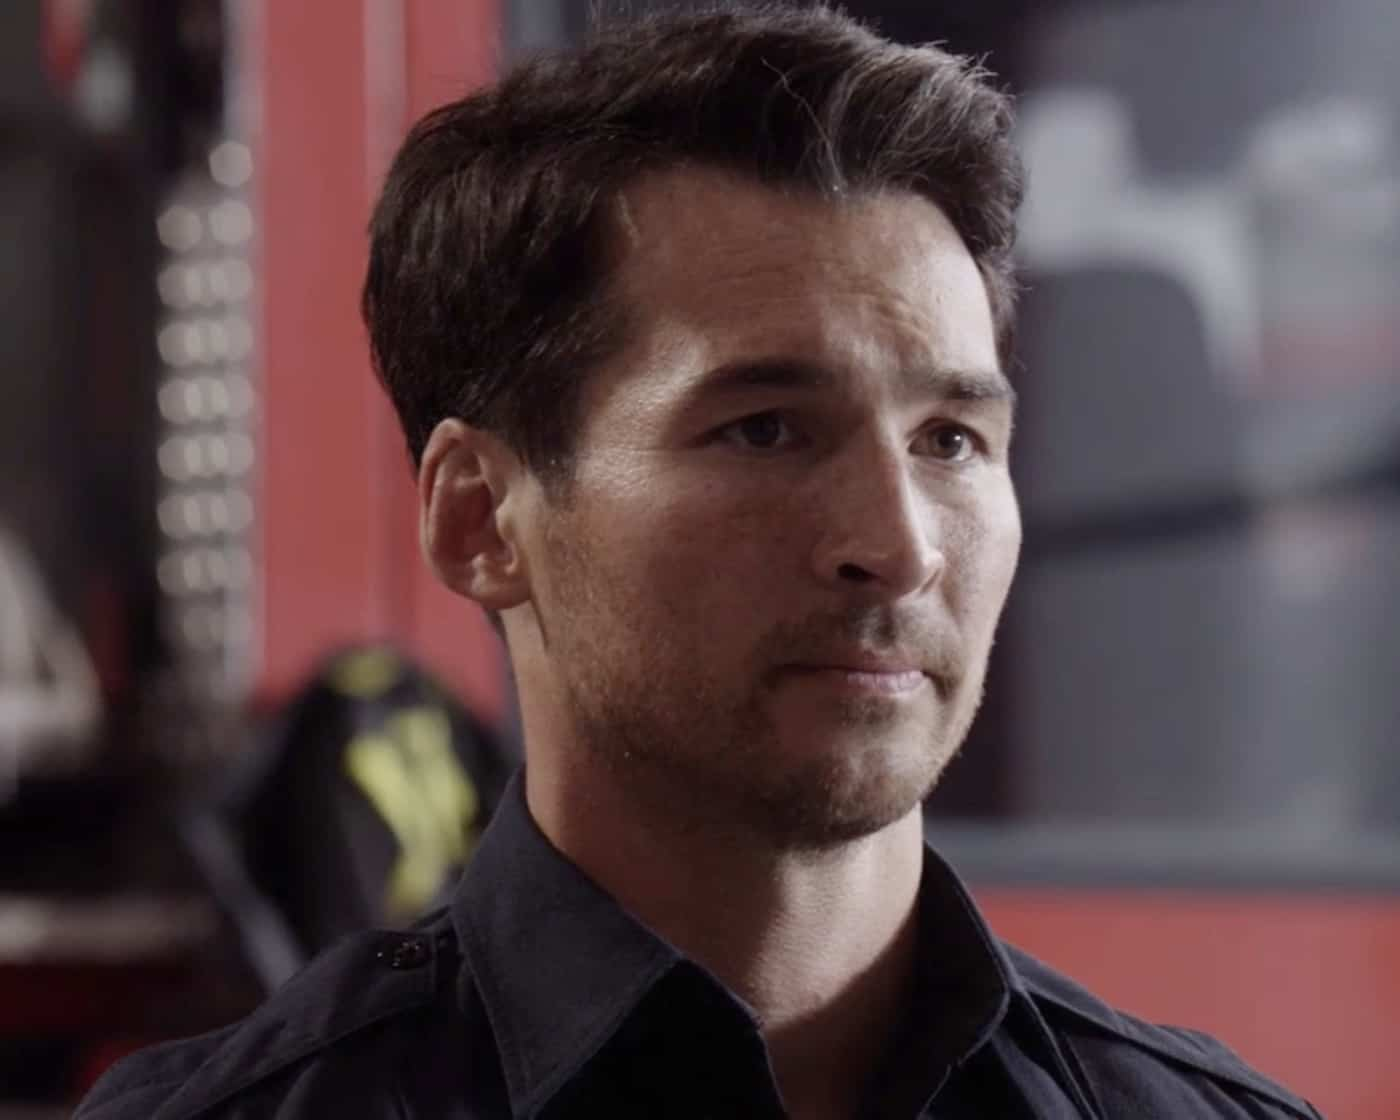 """STATION 19 Season 5 Episode 1 - """"Phoenix from the Flame"""" – Relationships are challenged at Station 19 following Sullivan's actions at Maya and Carina's wedding, putting his marriage with Andy to the test. Dean comes to terms with his feelings for Vic, while Travis rekindles an old flame. The annual Phoenix Festival brings out some reckless behavior in some of Seattle's citizens, challenging the teams at Station 19 and Grey Sloan Memorial in the season premiere of """"Station 19,"""" THURSDAY, SEPT. 30 (8:00-9:00 p.m. EDT), on ABC. (ABC) JAY HAYDEN"""